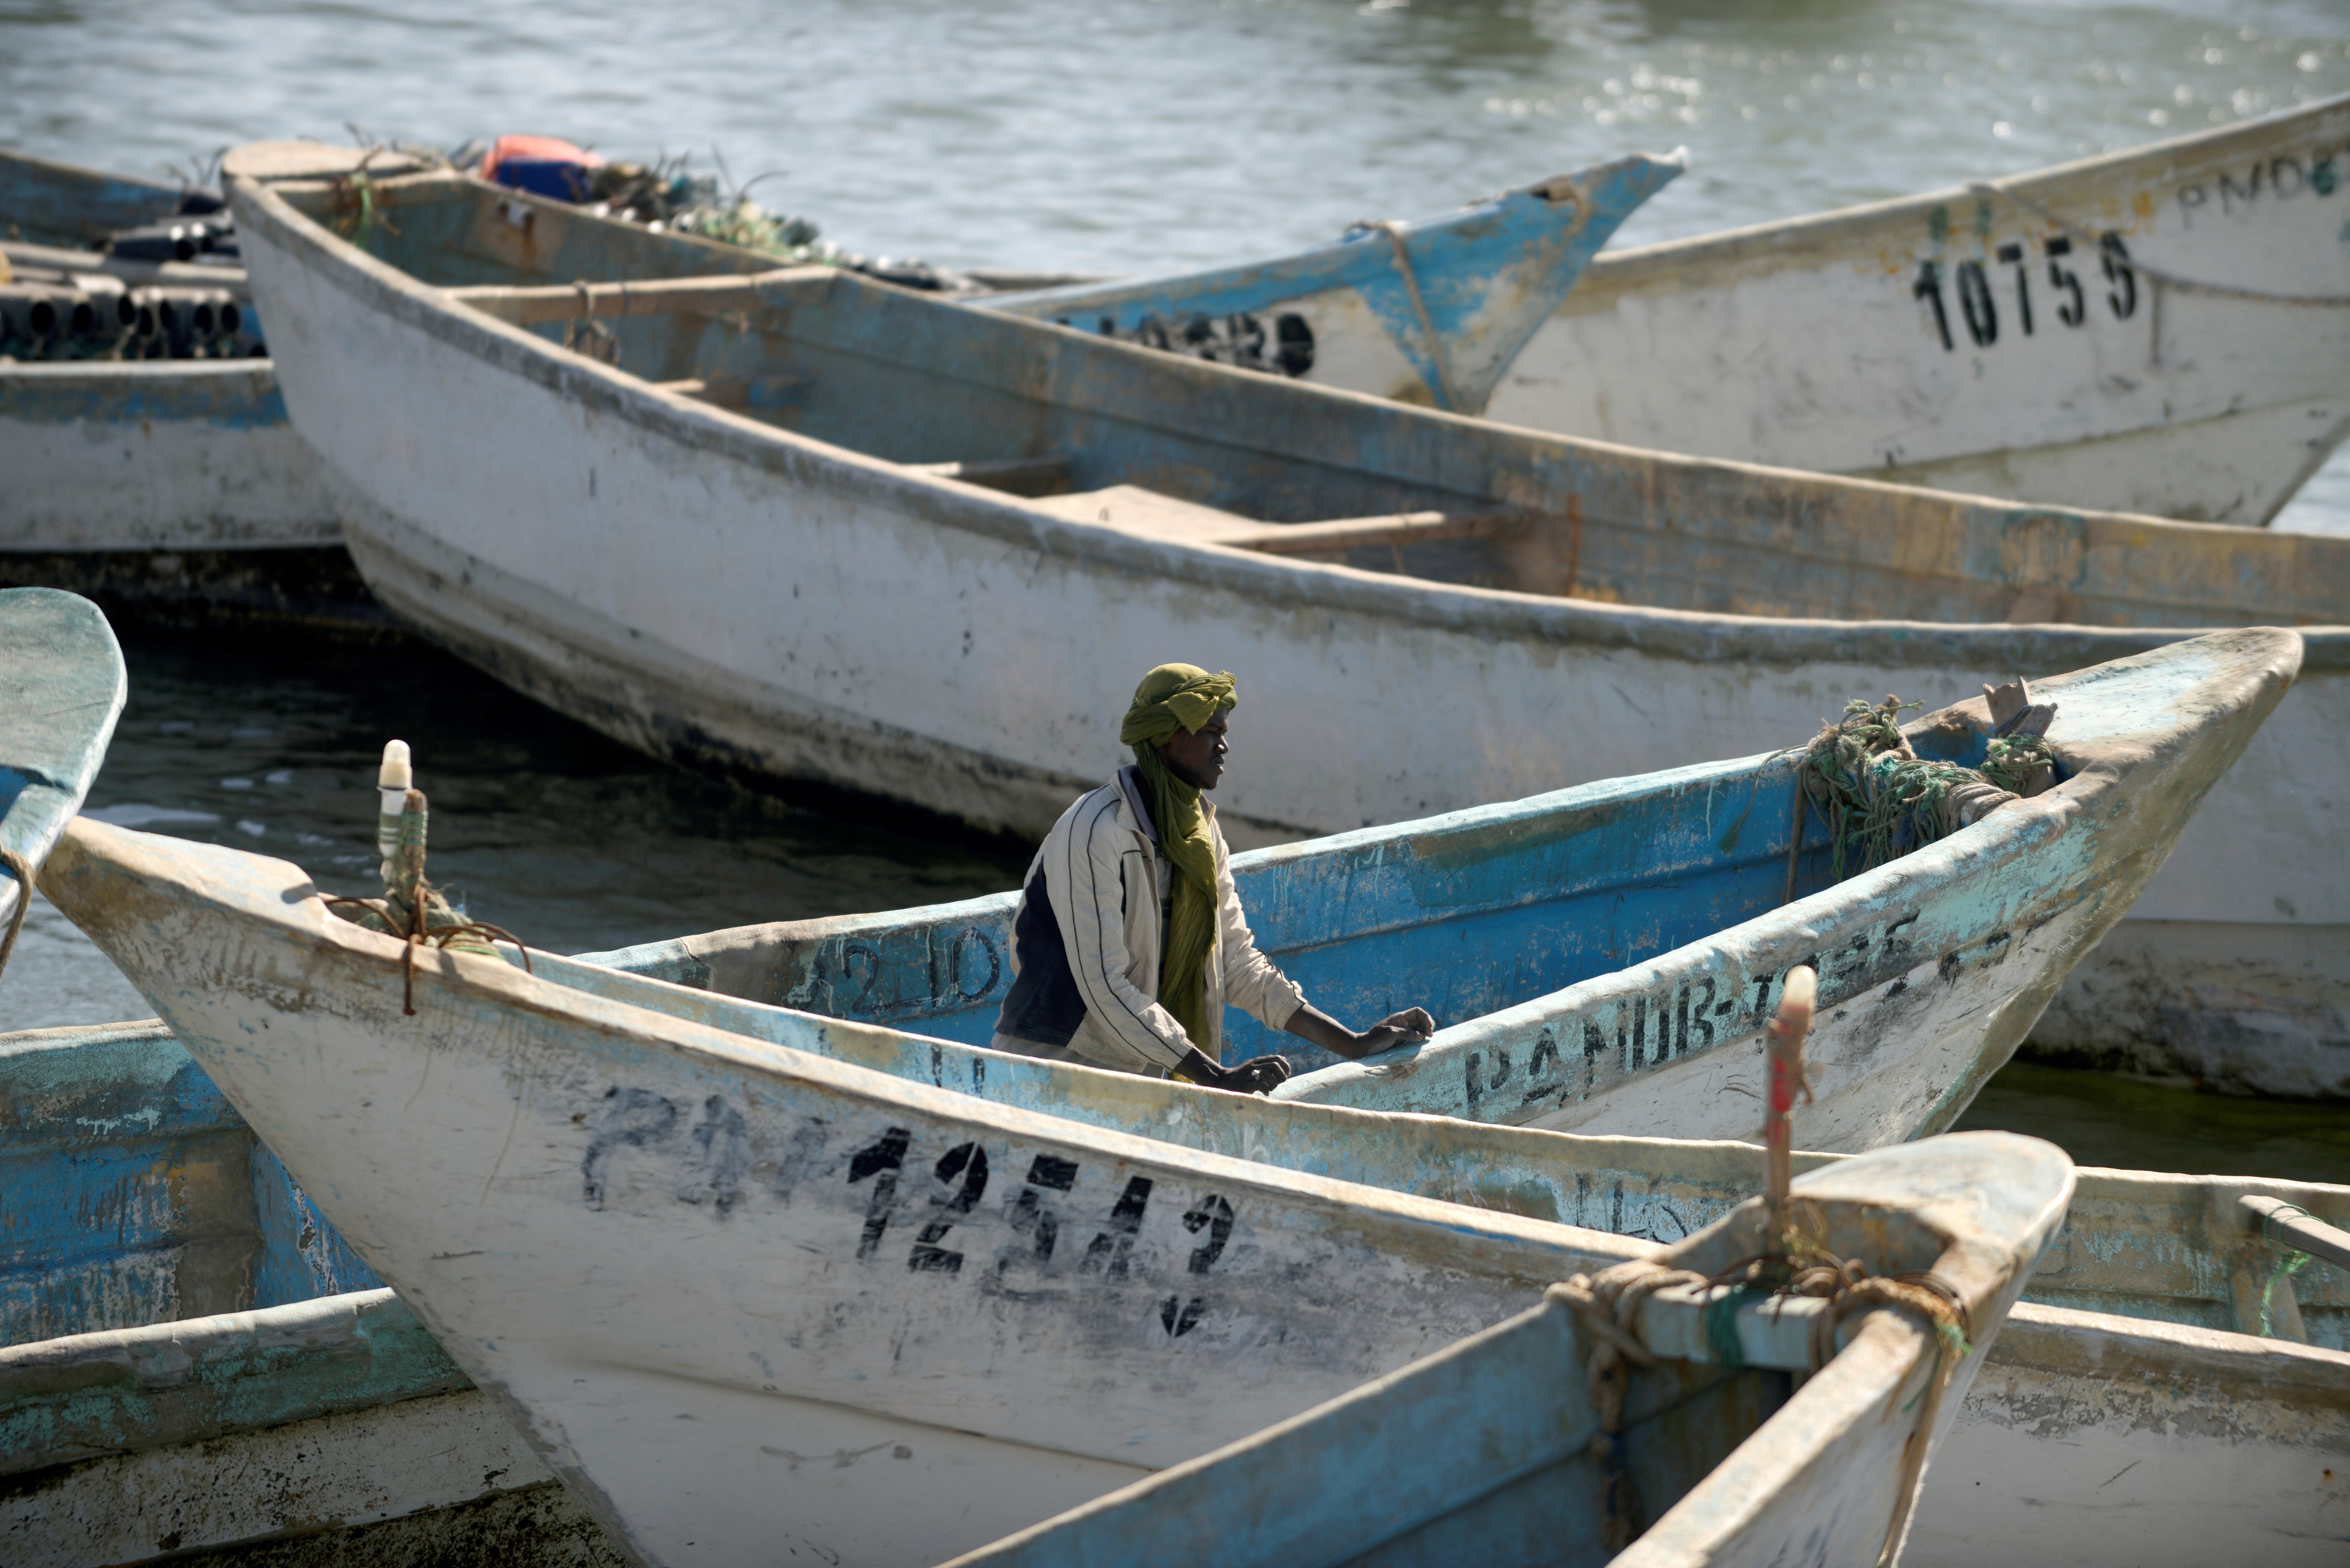 Artisanal fishing boats moored in the harbor at Nouadhibou, the main port in Mauritania, April 14, 2018.